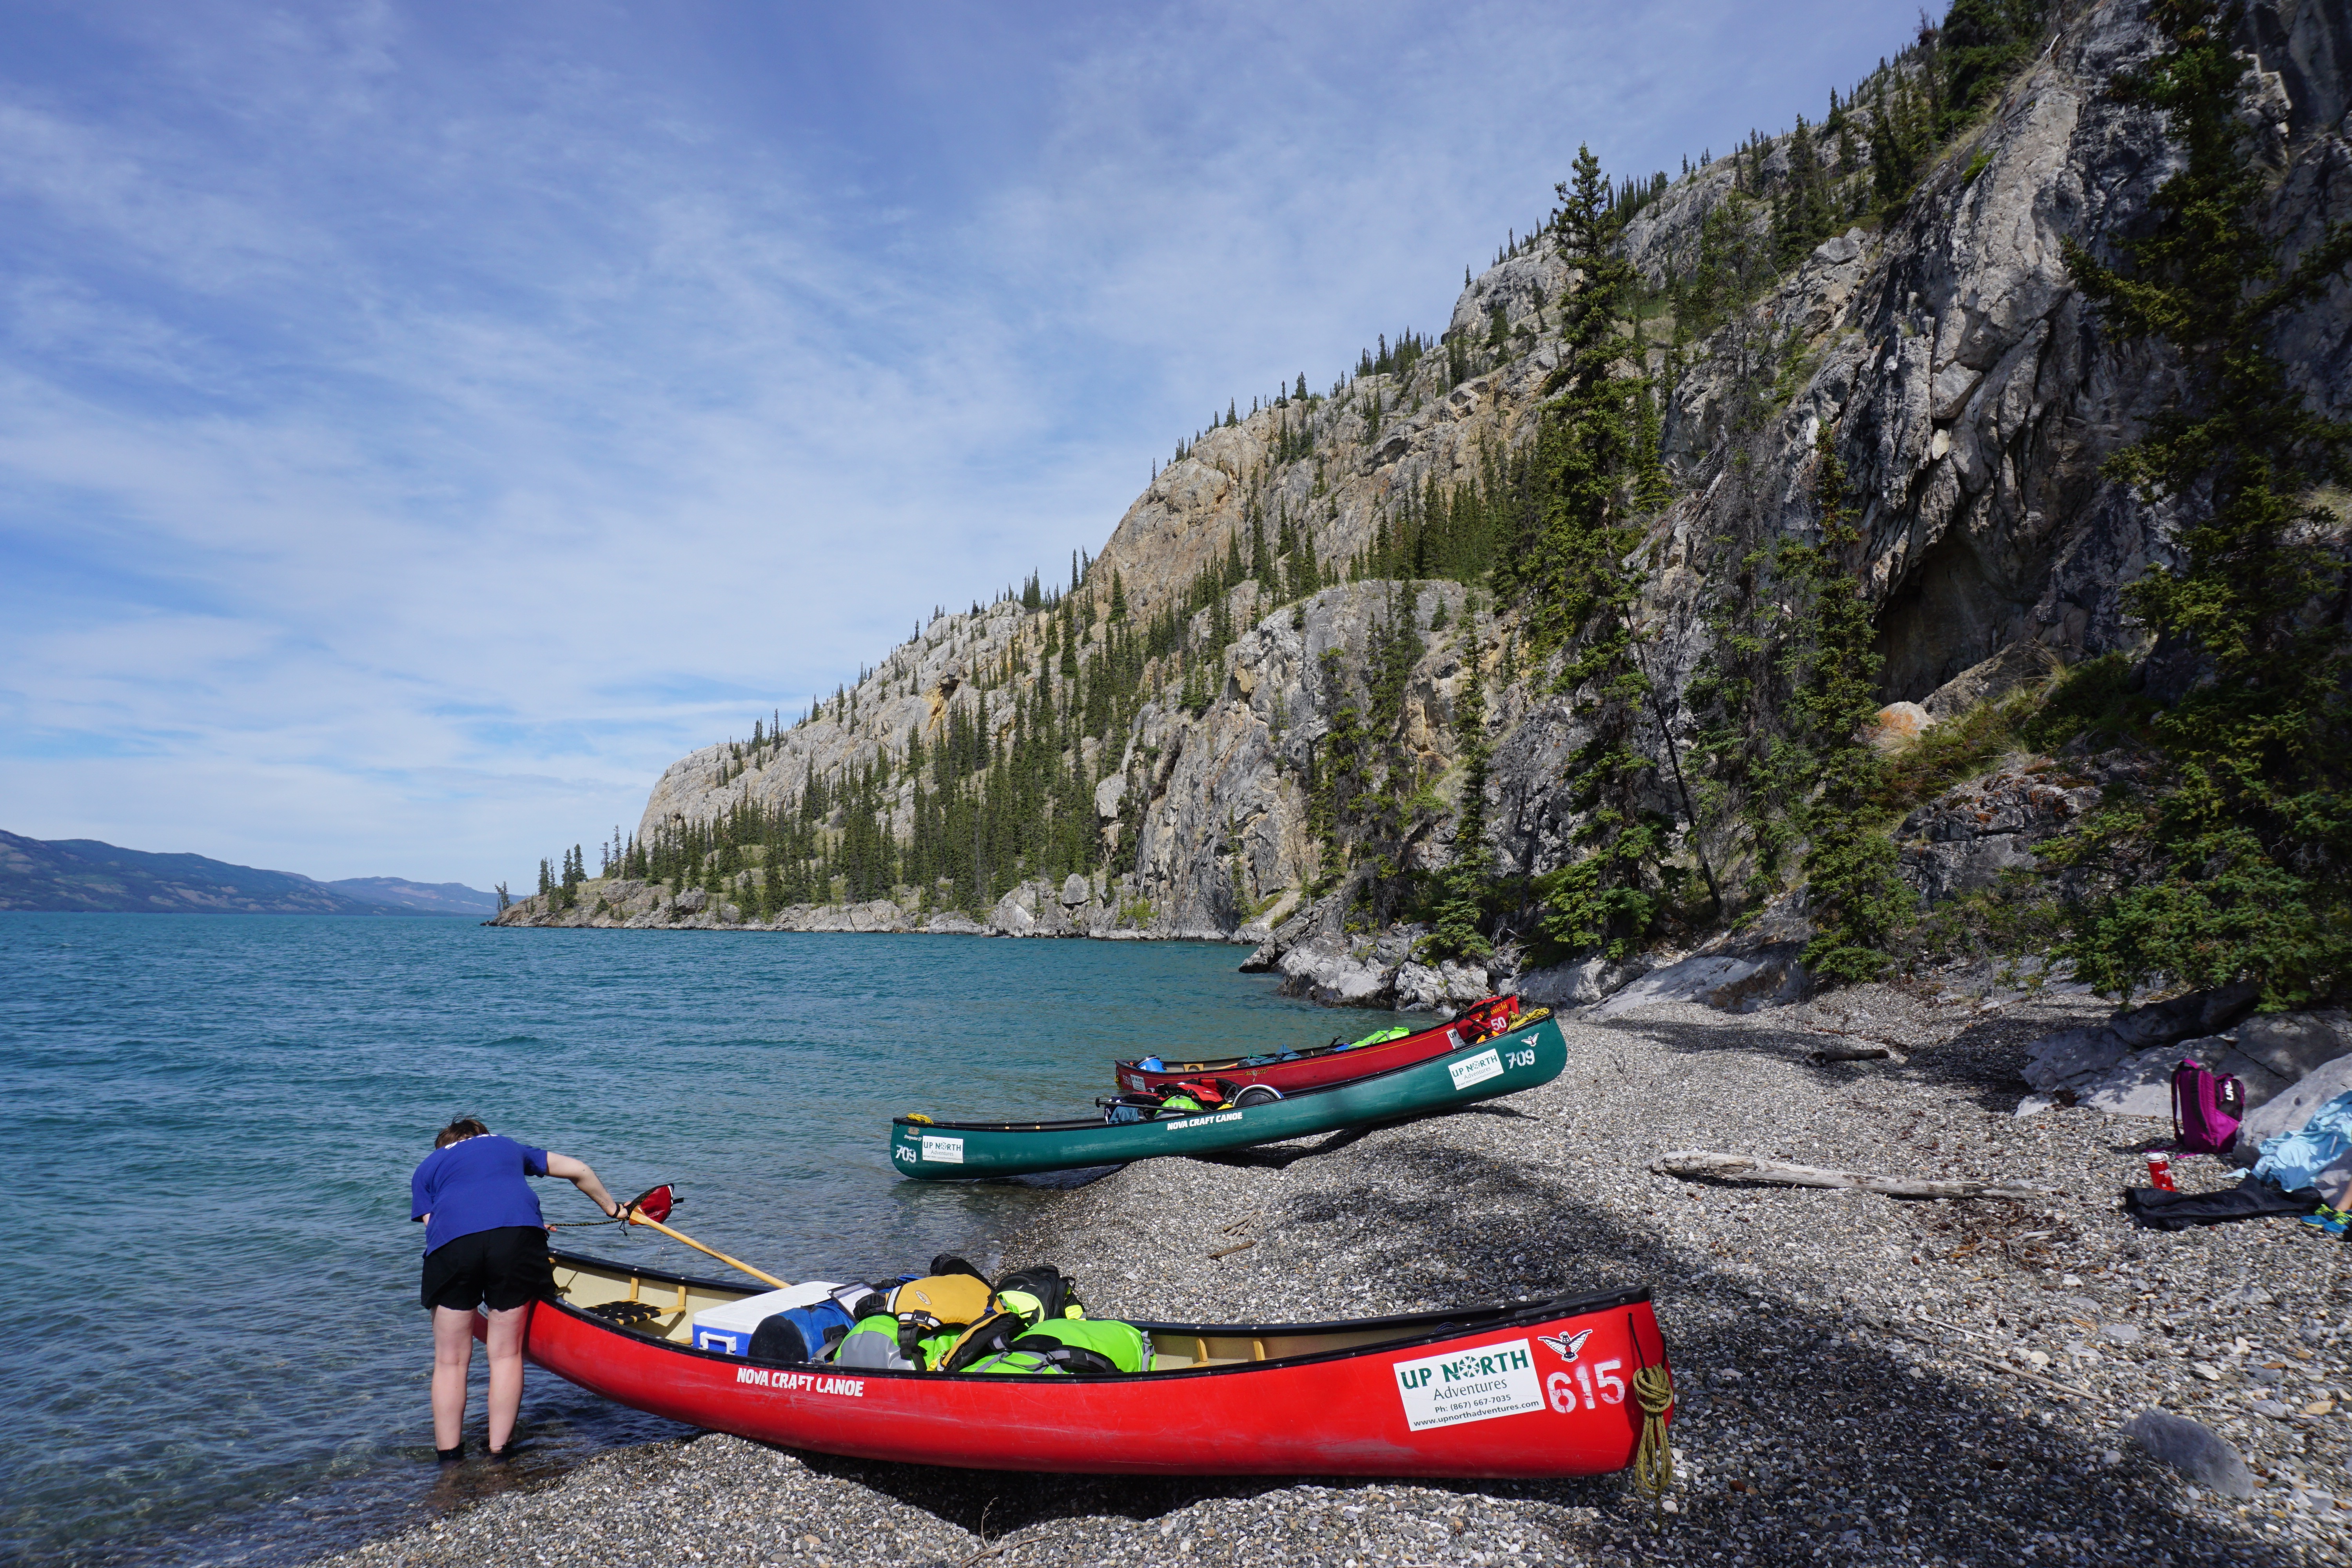 Yukon River Expedition - 19 Days by Up North Adventures - Image 39